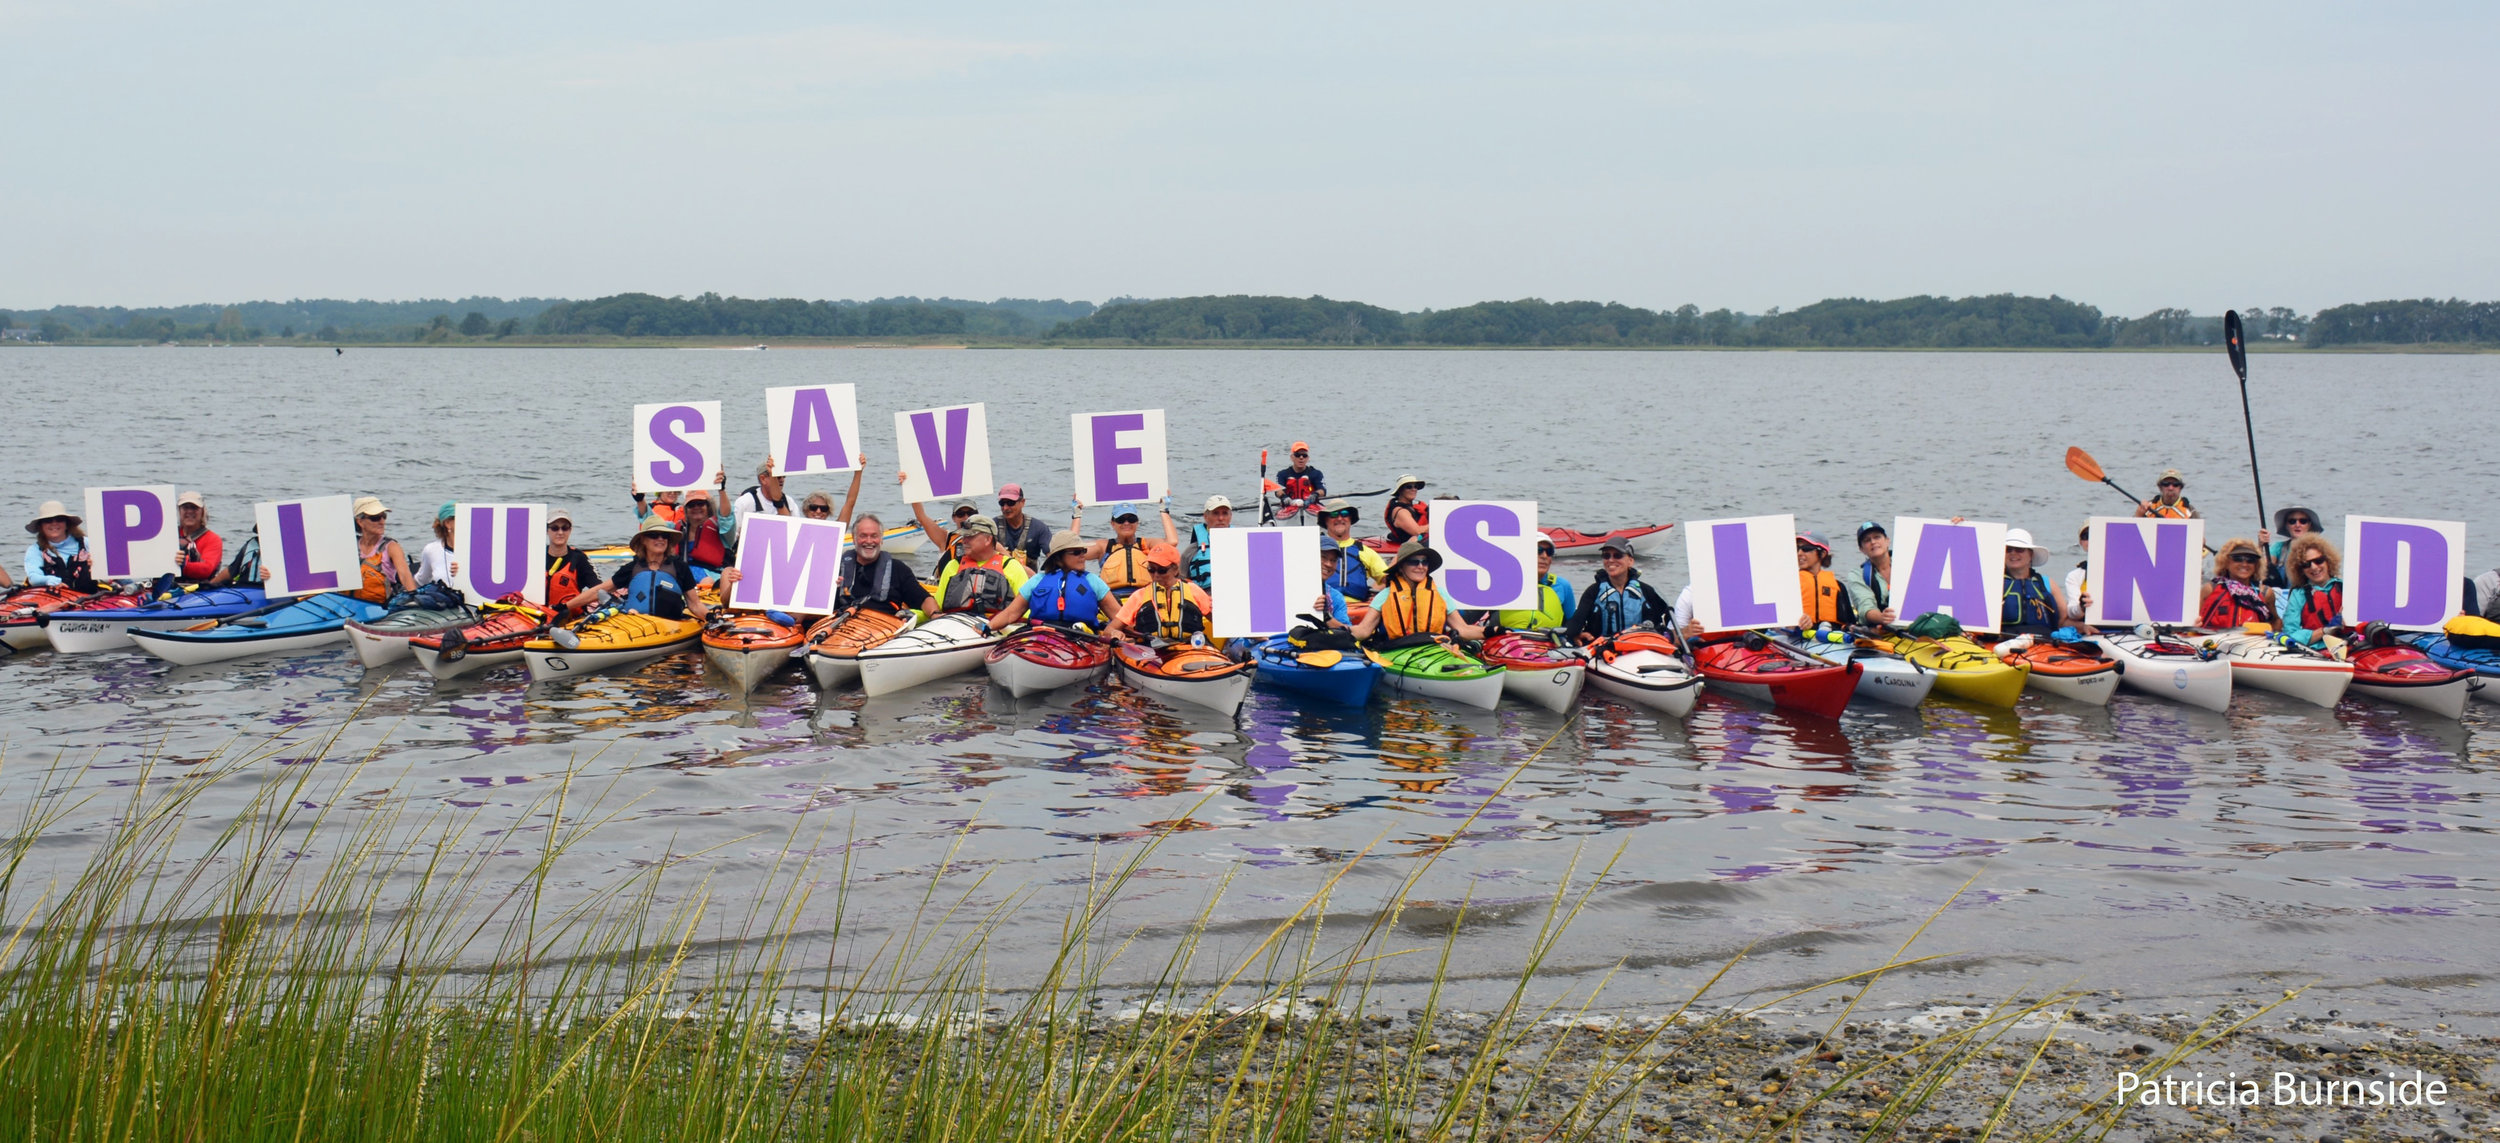 JOIN US for the 2019 Plum Paddle!!   This  Saturday, August 17  at 9:30 a.m. at Orient Beach State Park, 40000 Main Rd, Orient, and paddle/donate to save Plum Island!  Donate or sign up  here  (registration required if you you want to paddle with us). Proceeds will support the campaign to save Plum Island from devastating development.